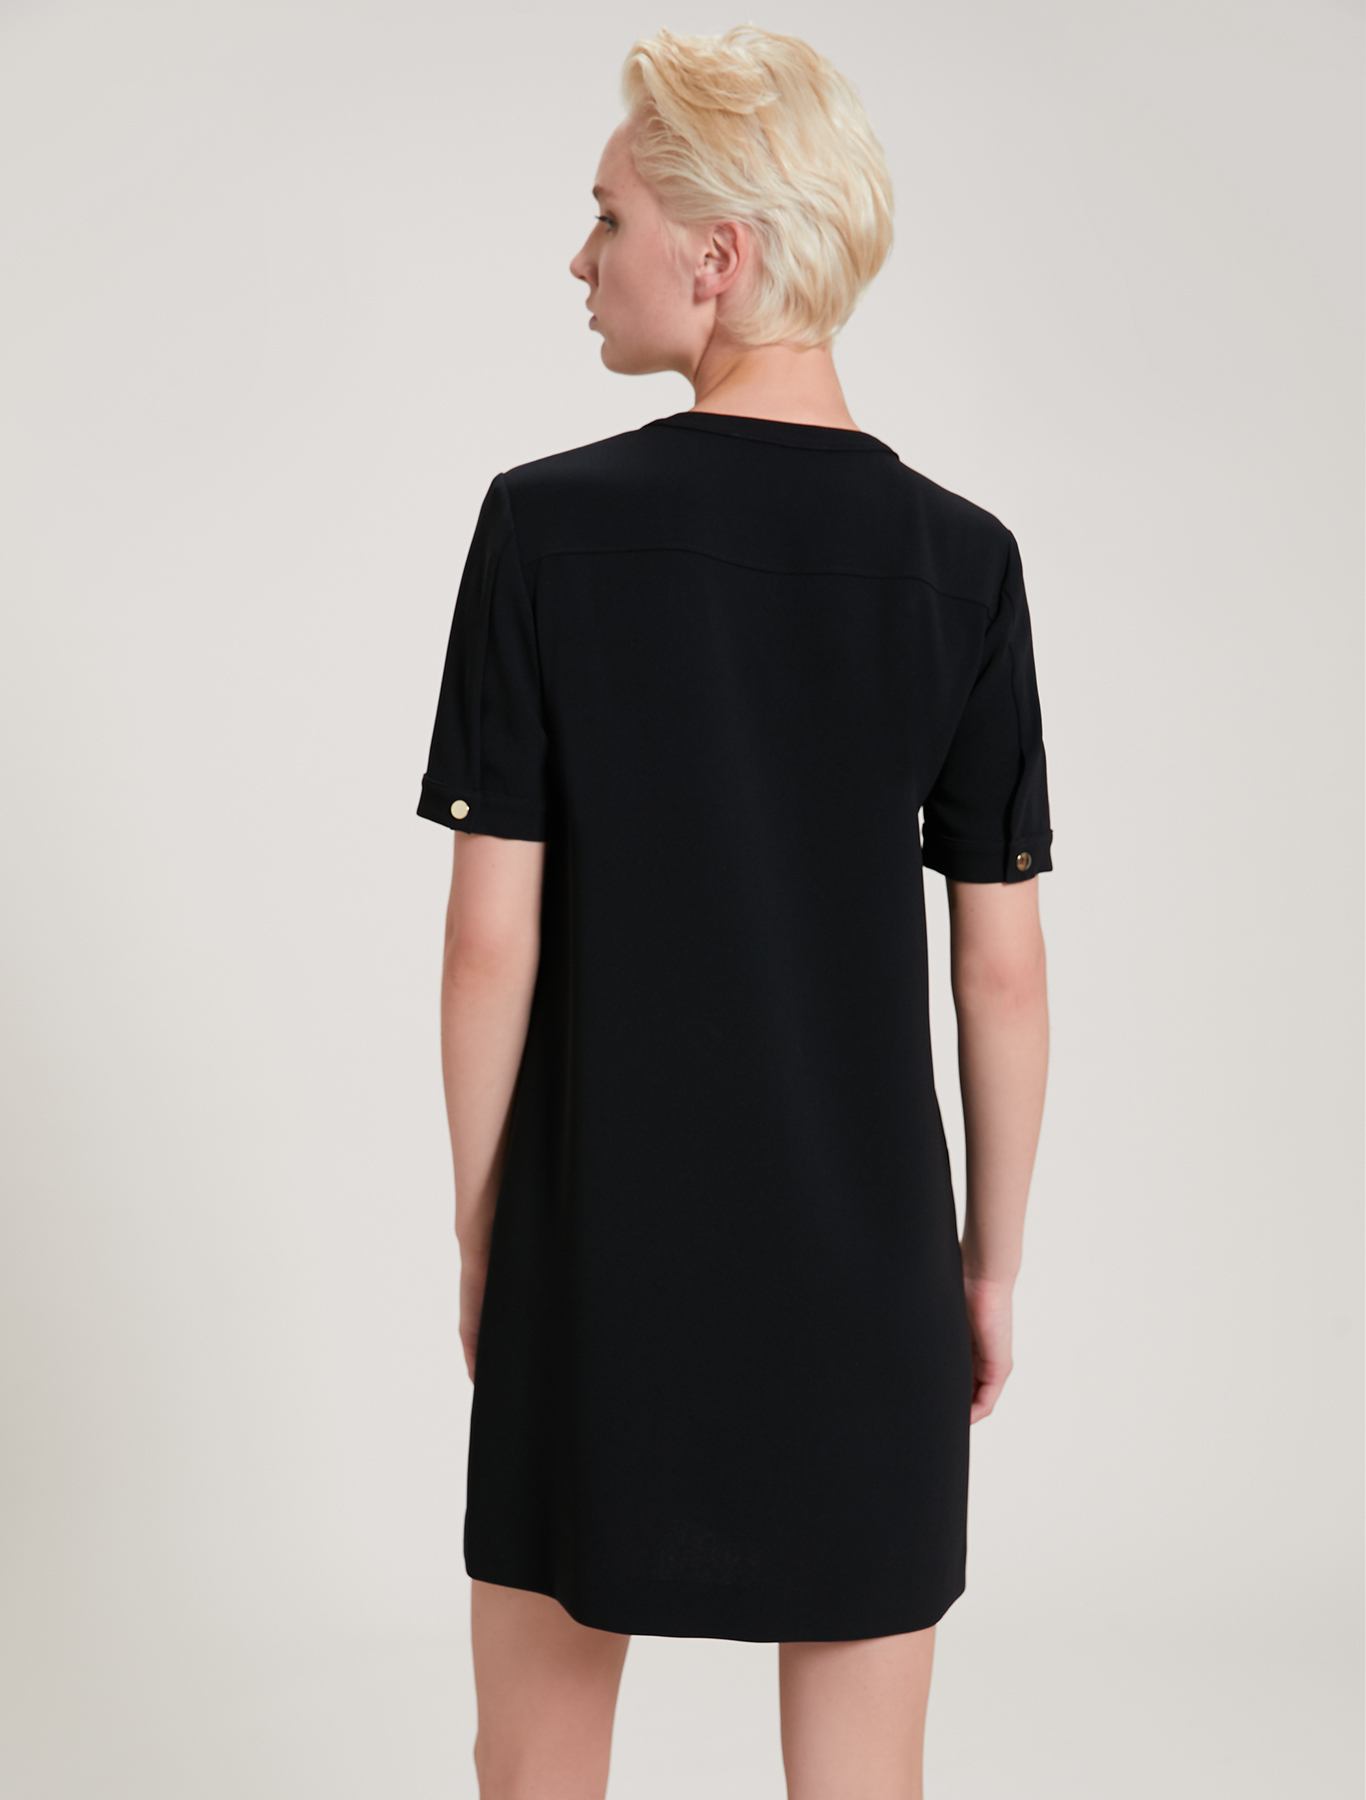 Flowing fabric dress - black - pennyblack